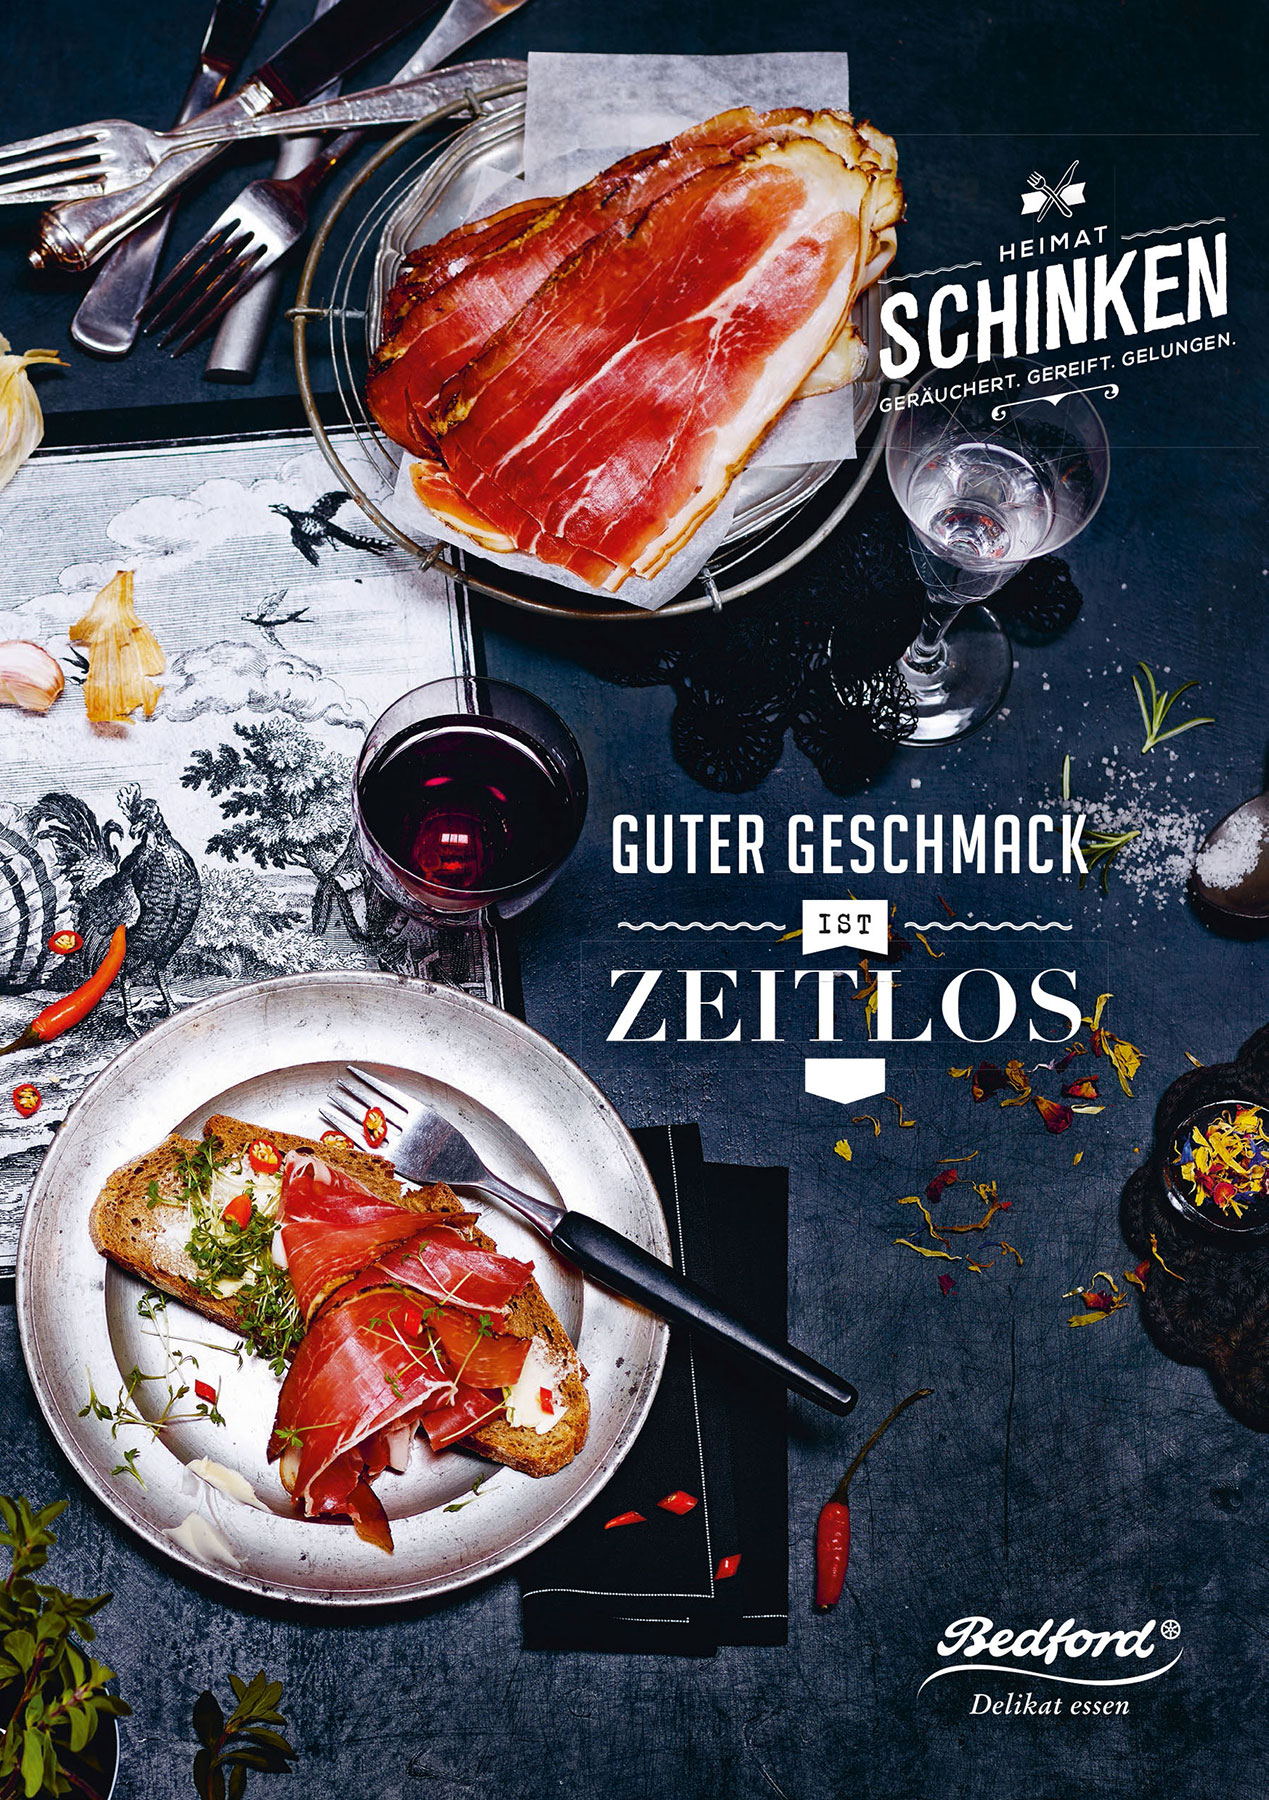 Laurent-Overmans-Foodstyling-Food-Styling-Top-Agence-Düsseldorf